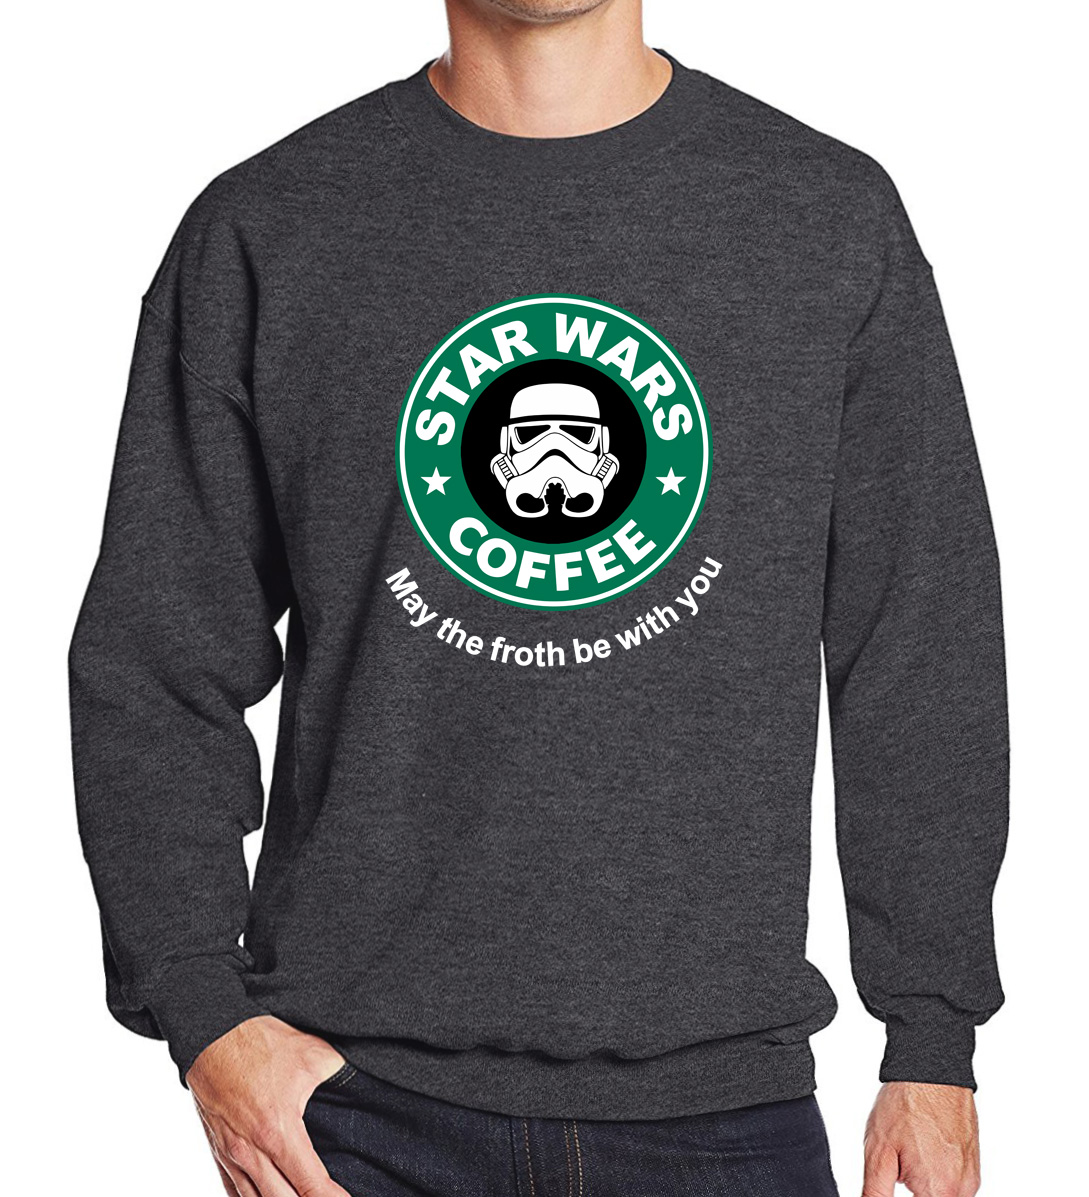 Sweatshirts men 2019 star wars  hoodies funny customized hip-hop pullovers male o-neck top brand tracksuits autumn fleece